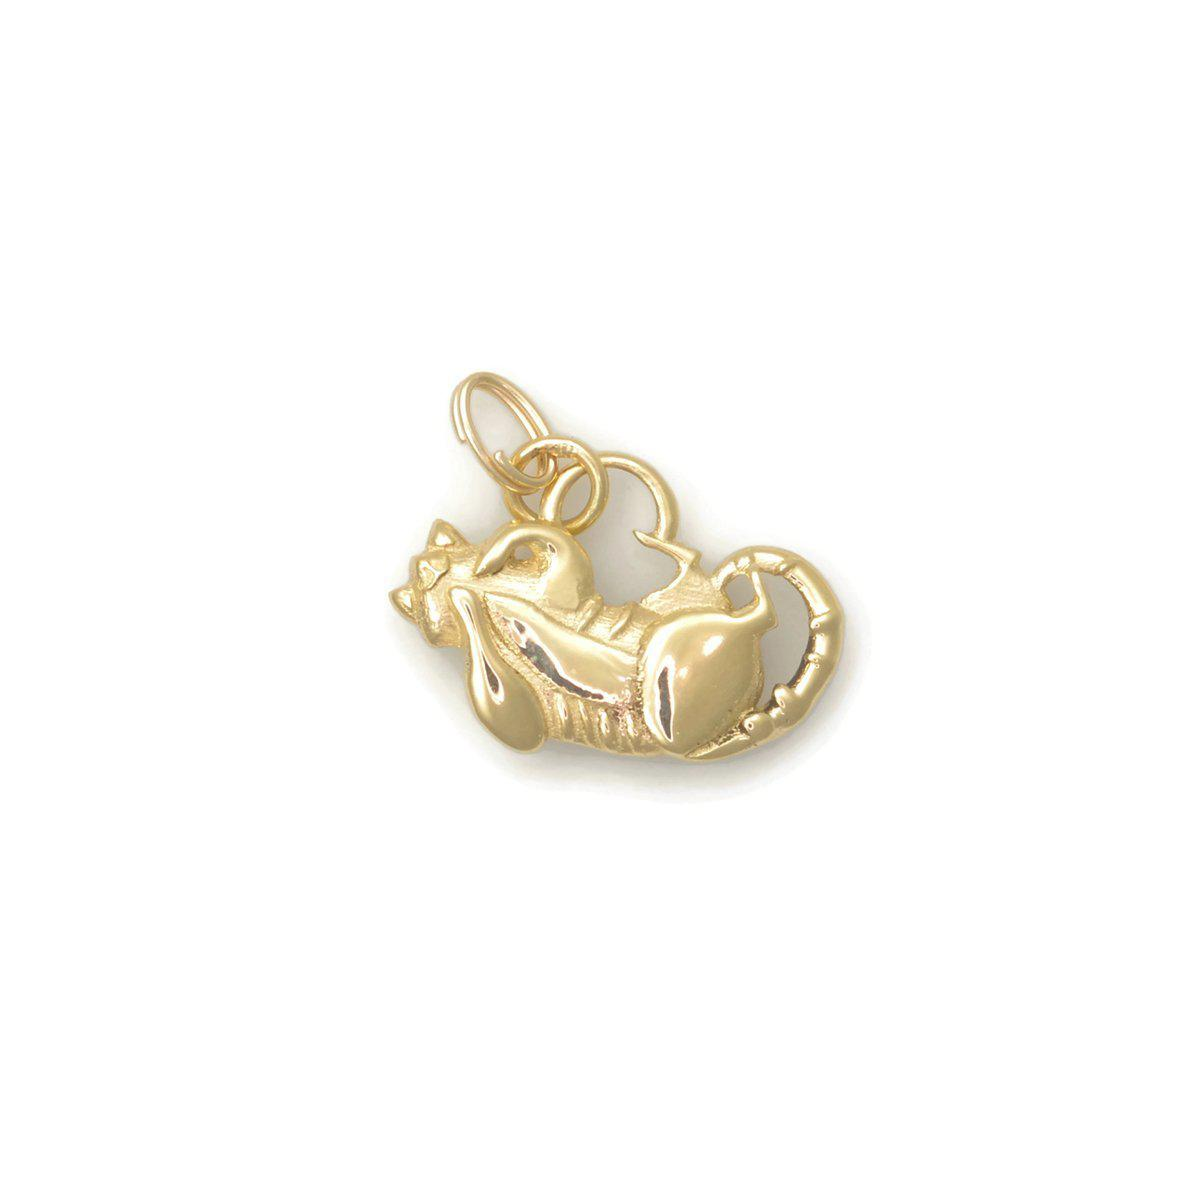 Donna Pizarro Designs 14kt Yellow Gold Tabby Cat Charm WjL7Rs5T